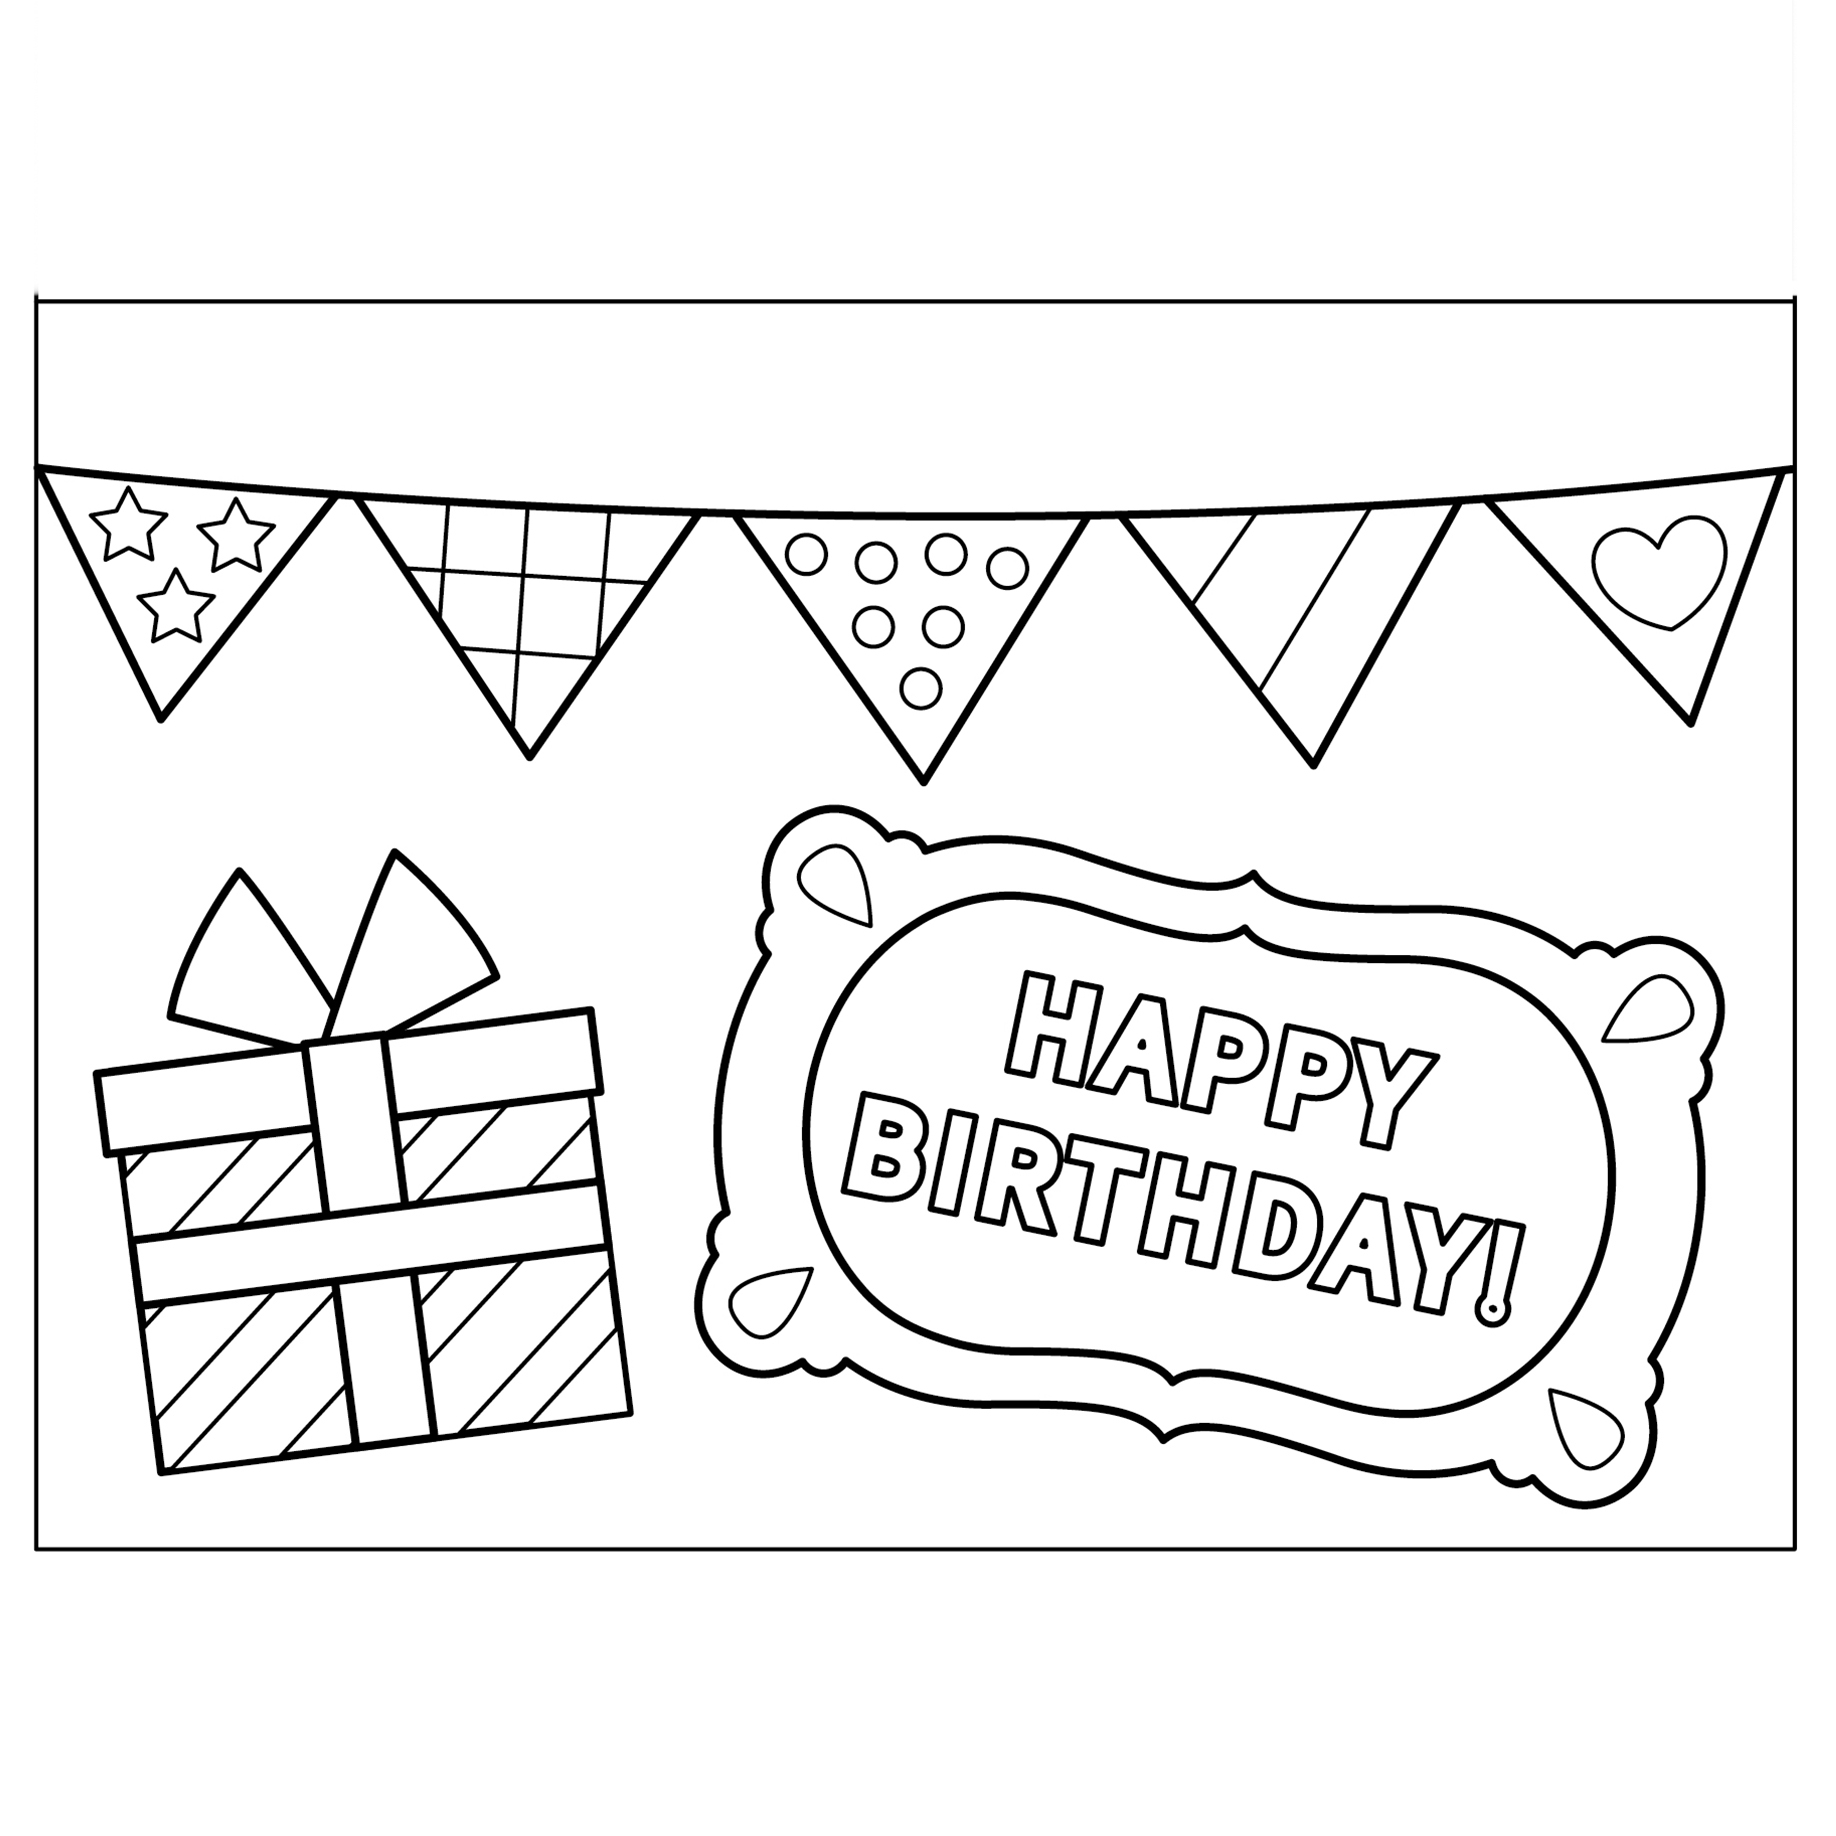 Cute Greeting Cards To Print And Color